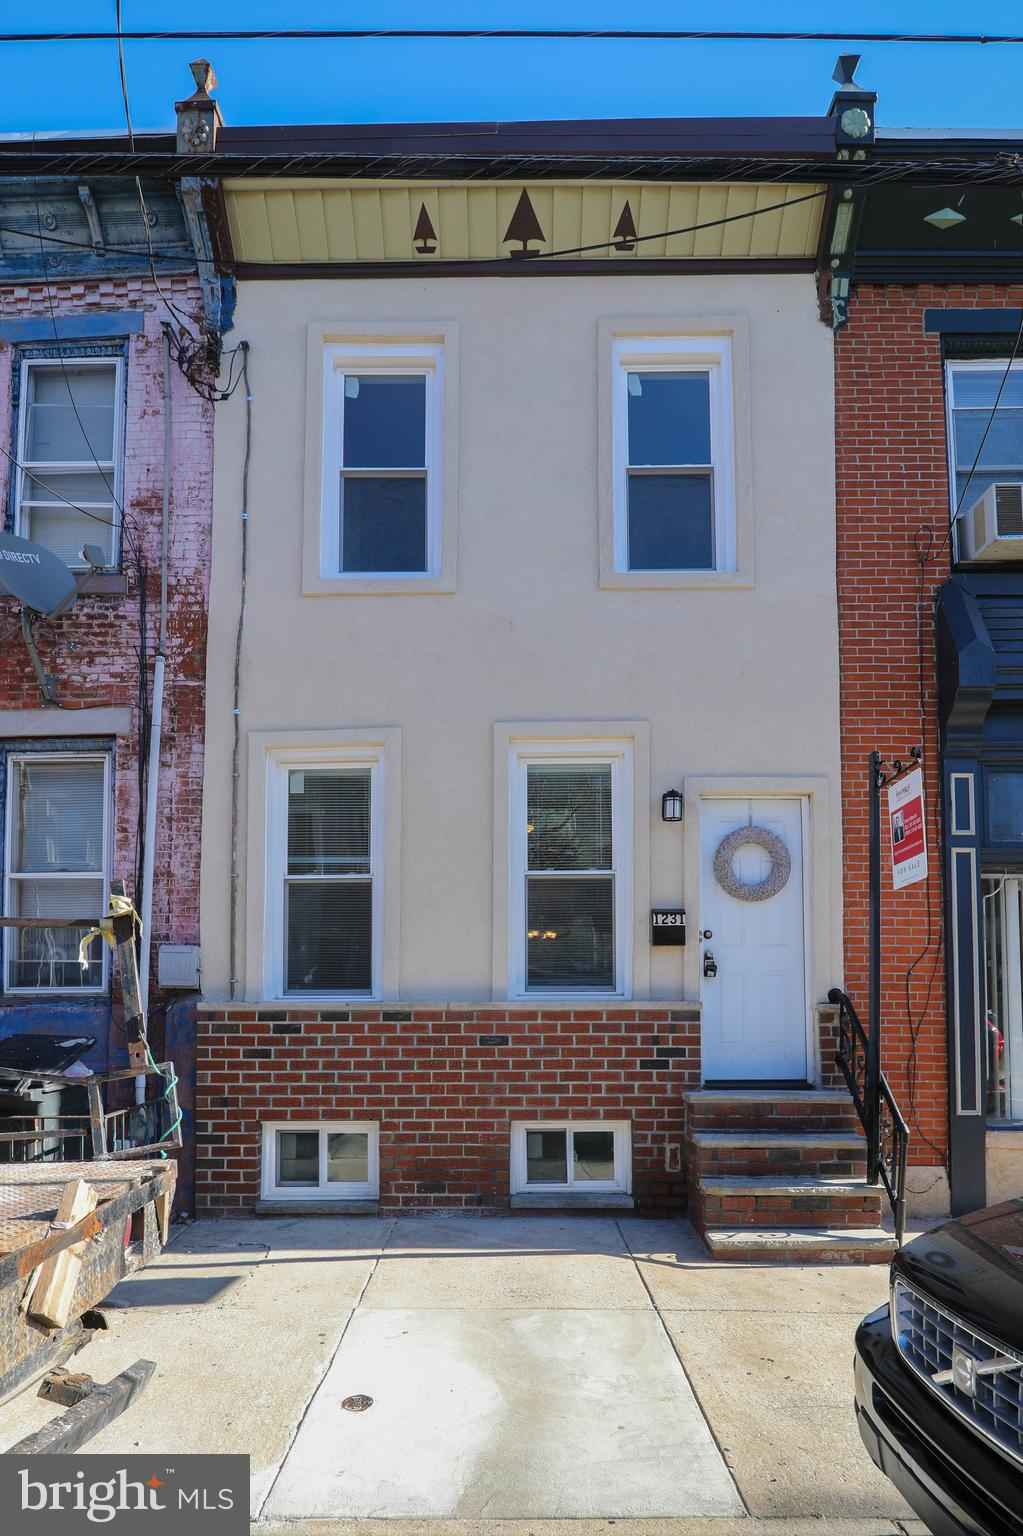 1231 S 26TH STREET, PHILADELPHIA, Pennsylvania 19146, 3 Bedrooms Bedrooms, ,2 BathroomsBathrooms,Townhouse,For Sale,1231 S 26TH STREET,PAPH866704